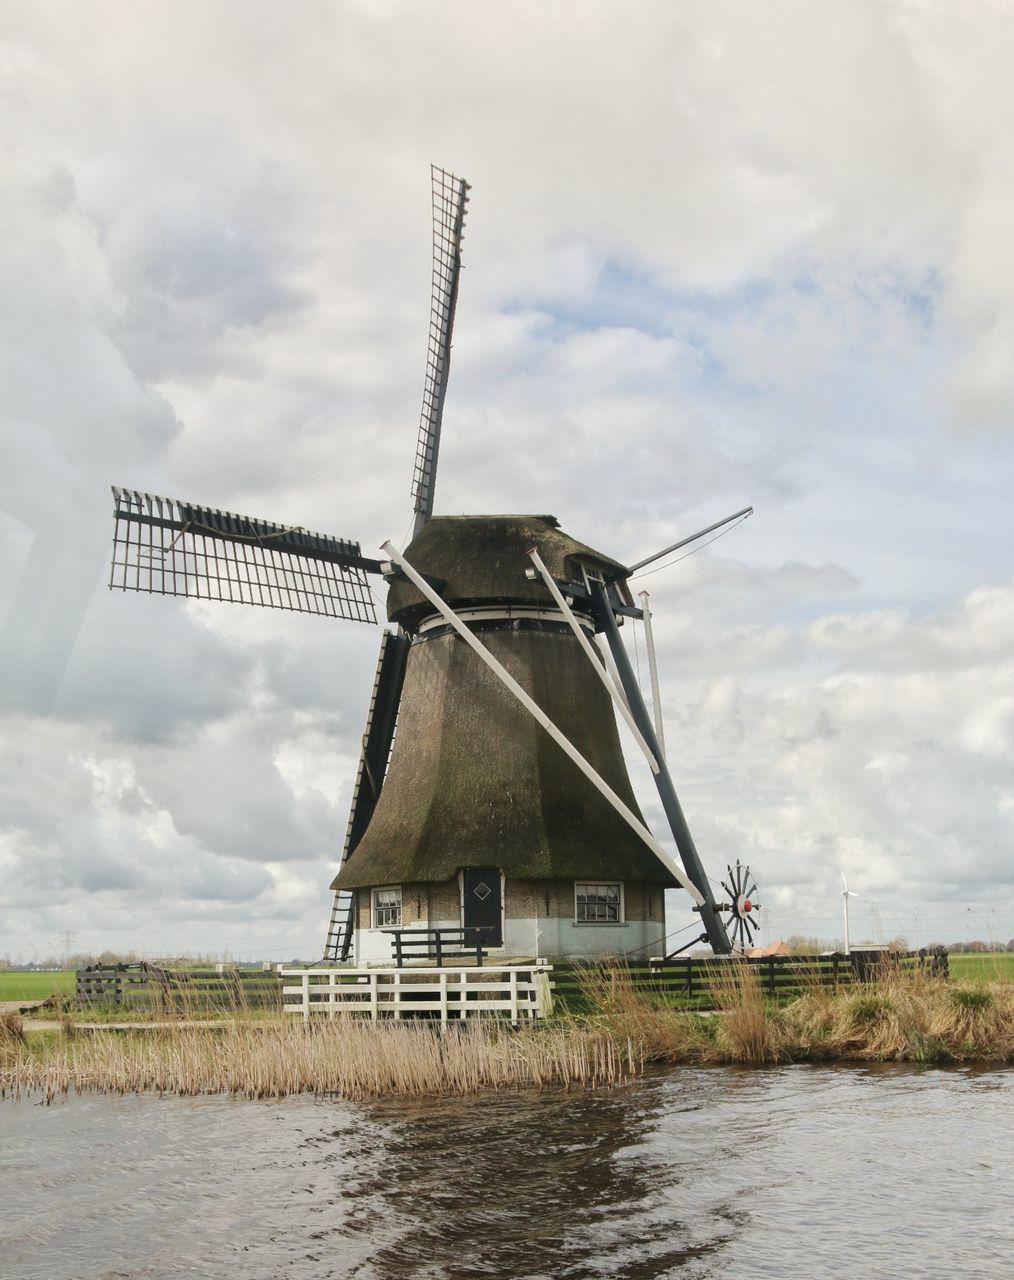 alternative energy, wind power, windmill, wind turbine, environmental conservation, renewable energy, cloud - sky, fuel and power generation, traditional windmill, sky, industrial windmill, water, day, outdoors, built structure, architecture, nature, field, waterfront, no people, rural scene, building exterior, technology, beauty in nature